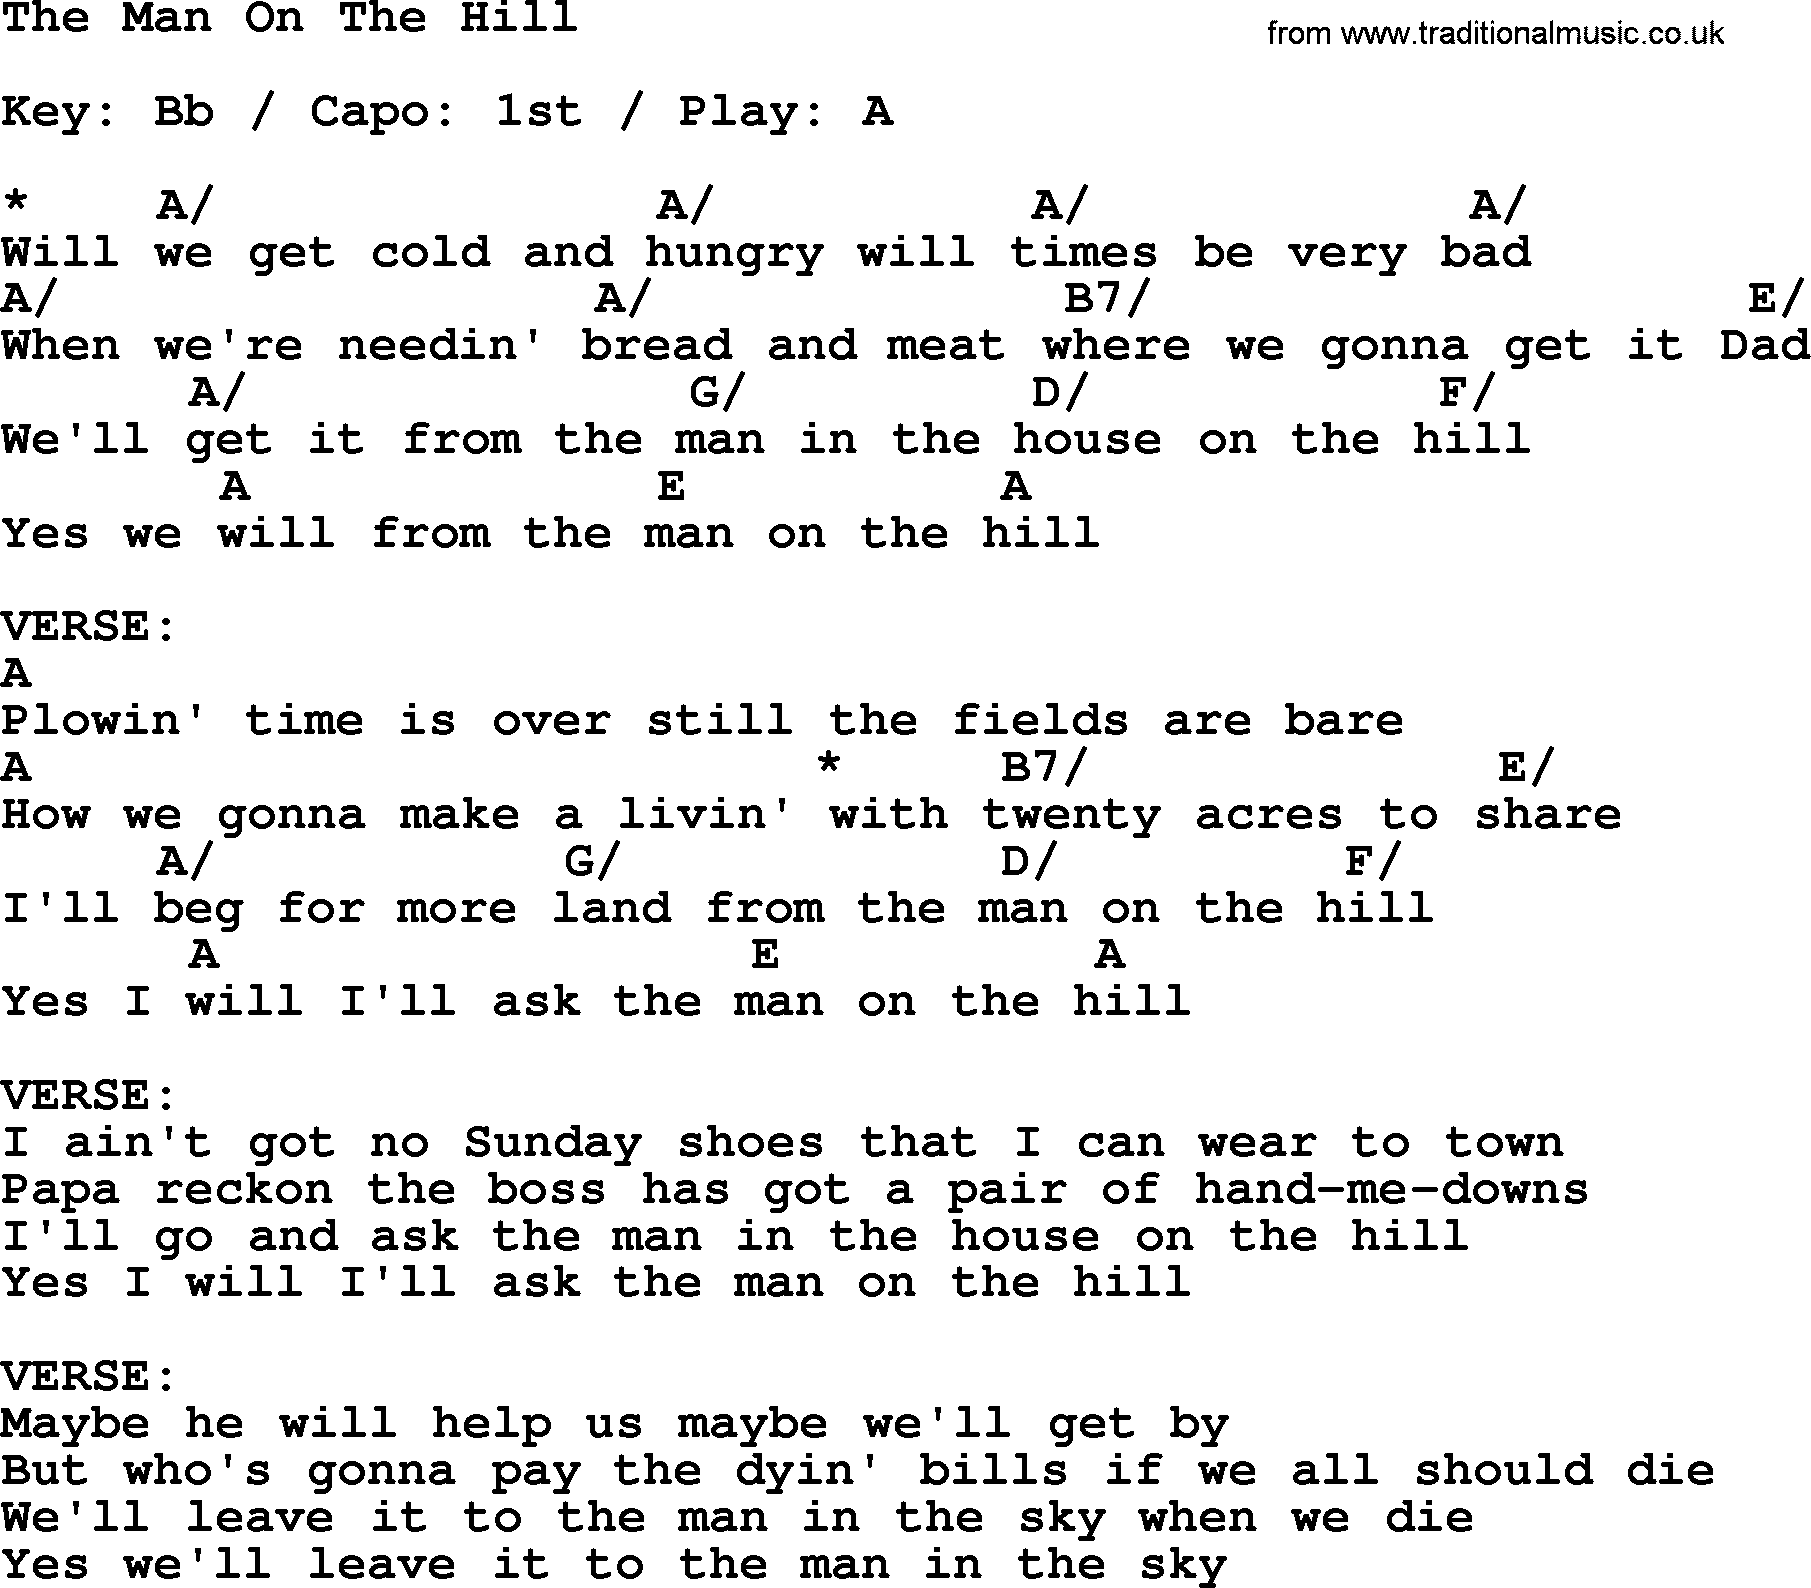 Johnny cash song the man on the hill lyrics and chords johnny cash song the man on the hill lyrics and chords hexwebz Images